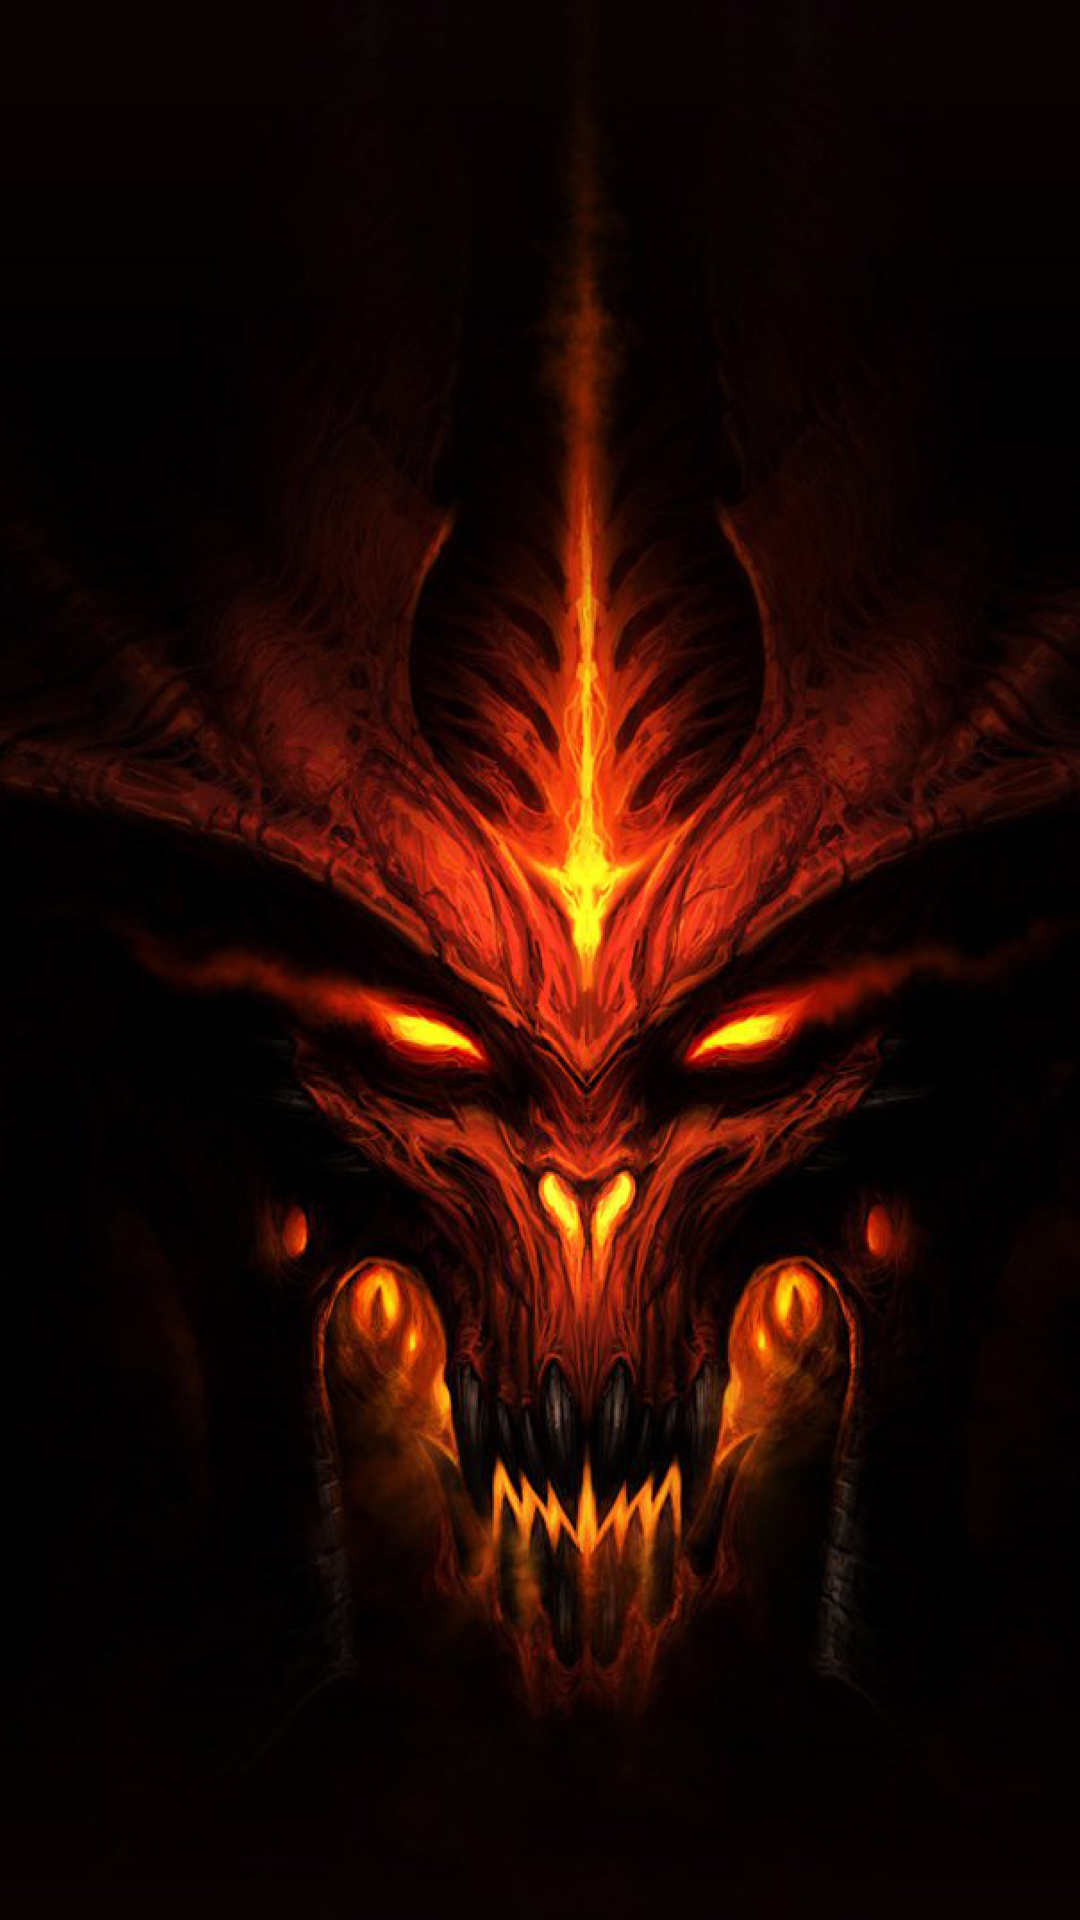 Badass Wallpapers For Android 07 0f 40 Diablo III Game ...